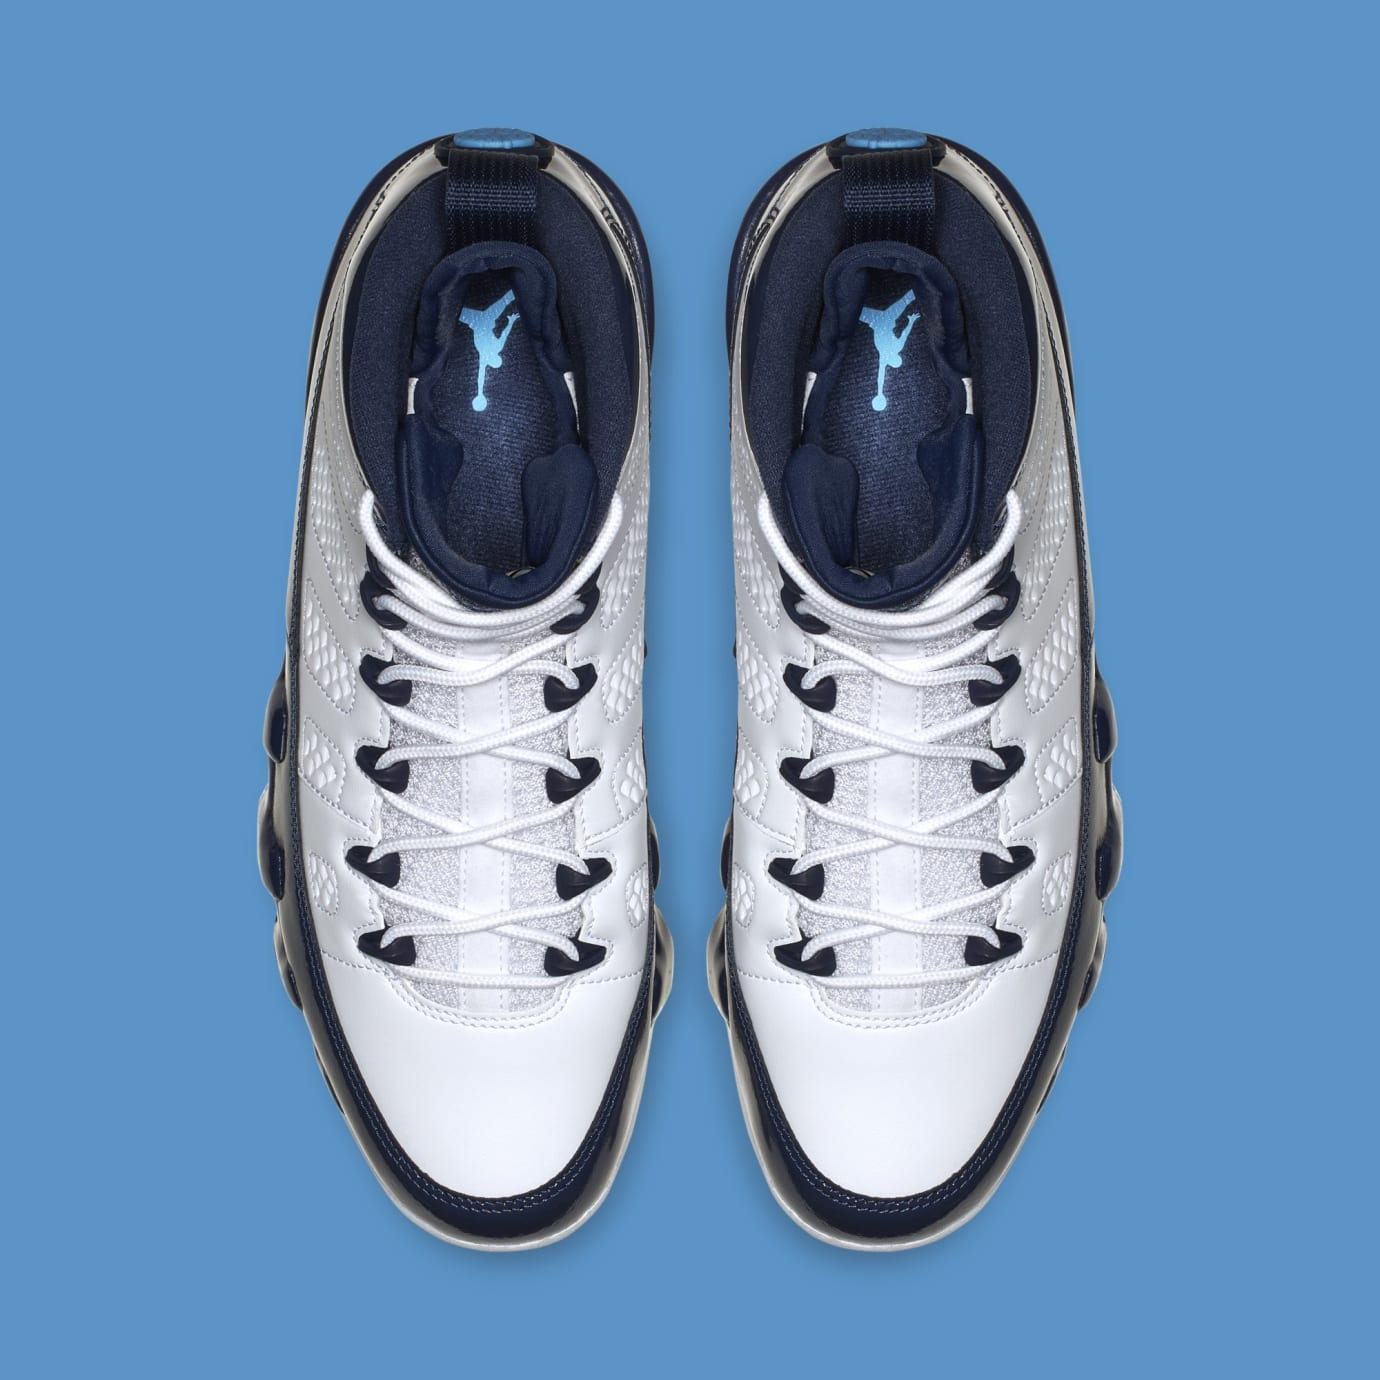 outlet store 17f83 03170 Image via Nike Air Jordan 9  White Midnight Navy-University Blue   302370-145 (